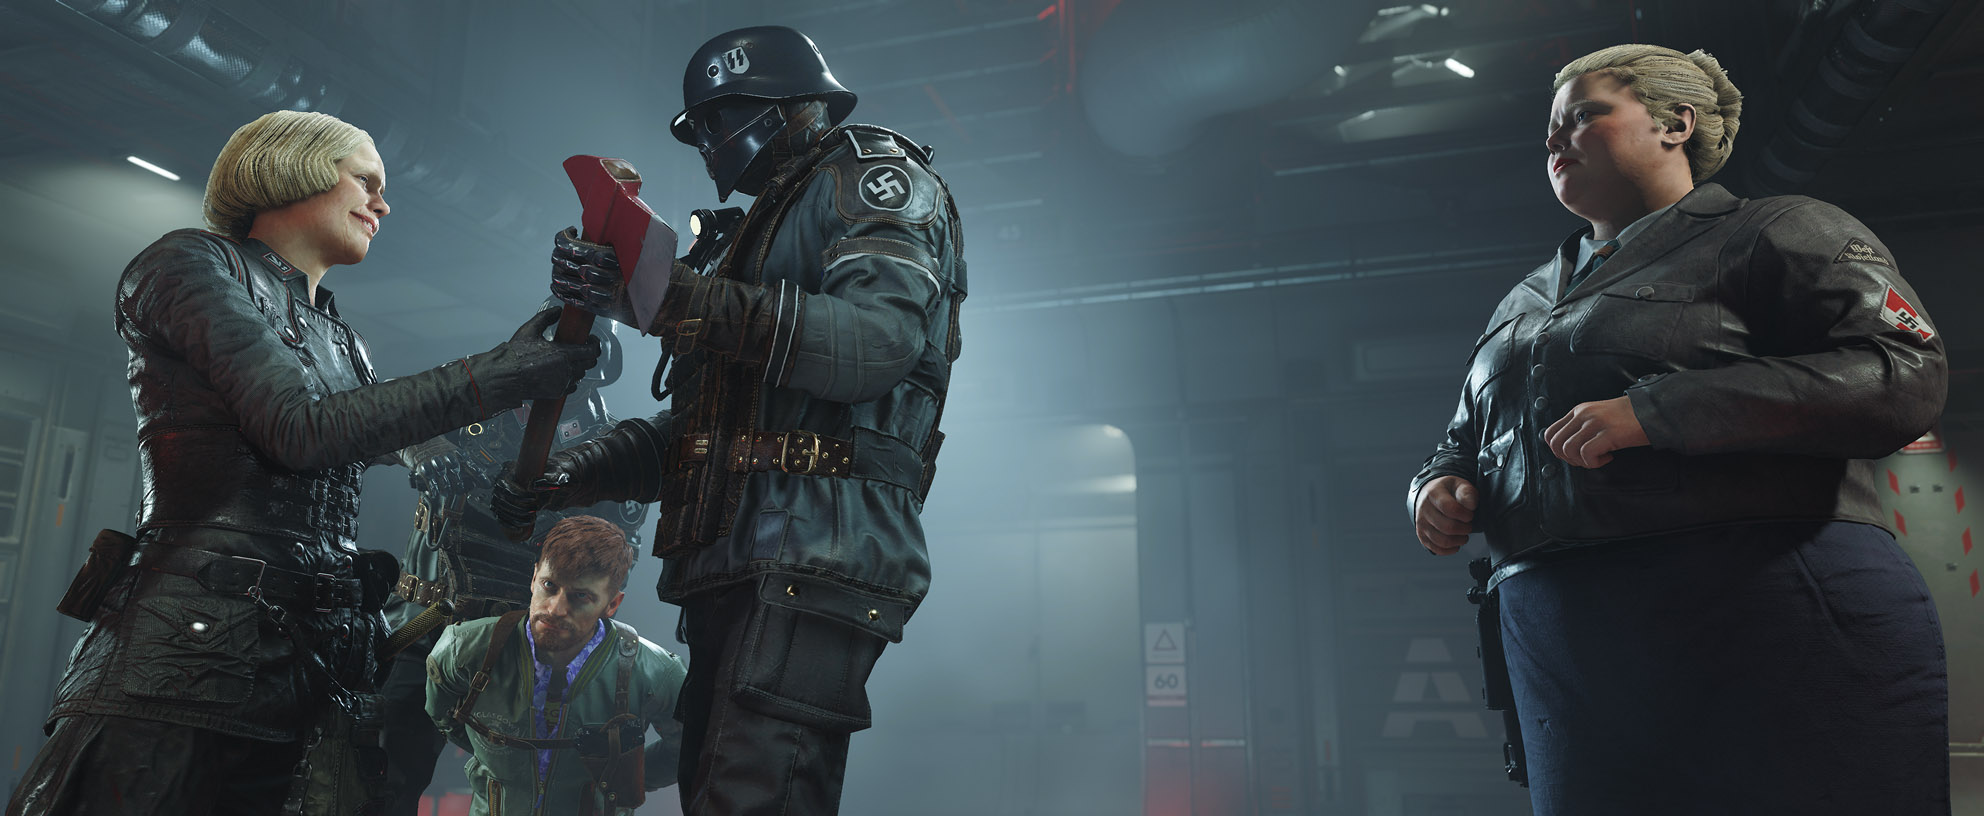 In Wolfenstein: The New Colossus, Irene Engle is back, and she appears to be very upset with Blazkowicz.